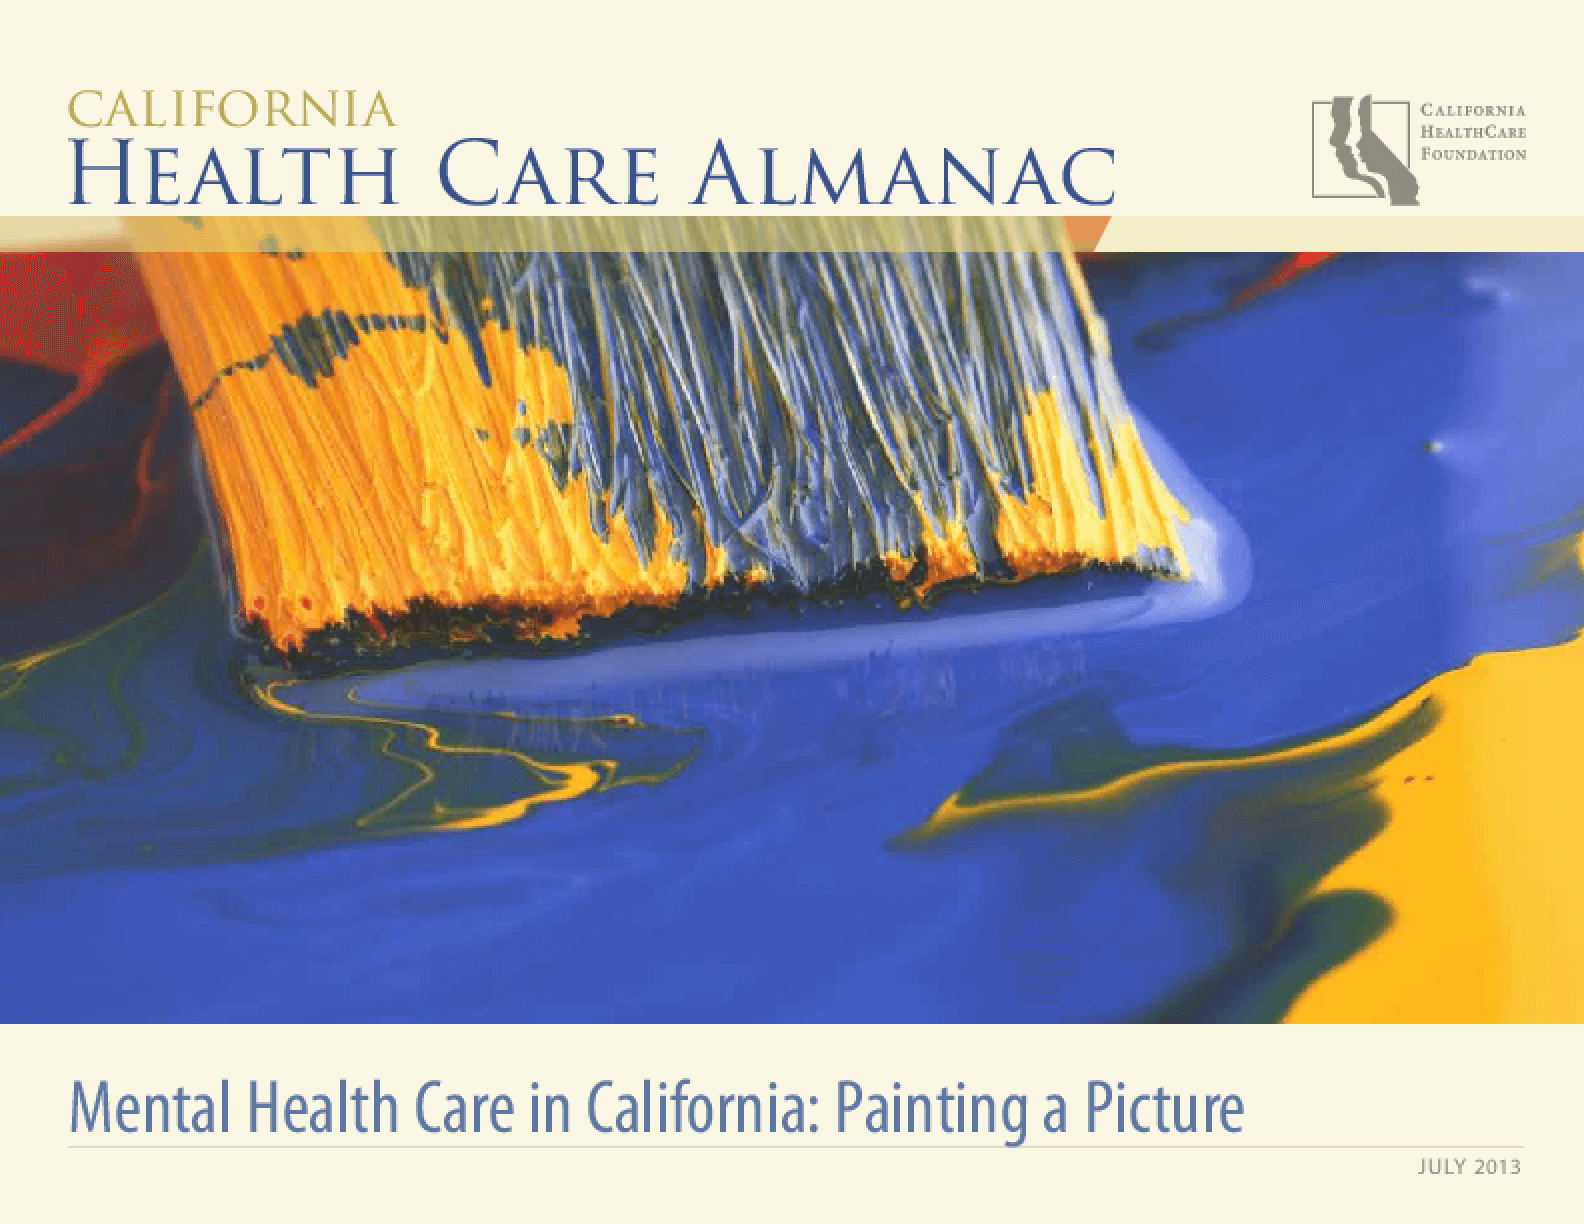 Mental Health Care in California: Painting a Picture